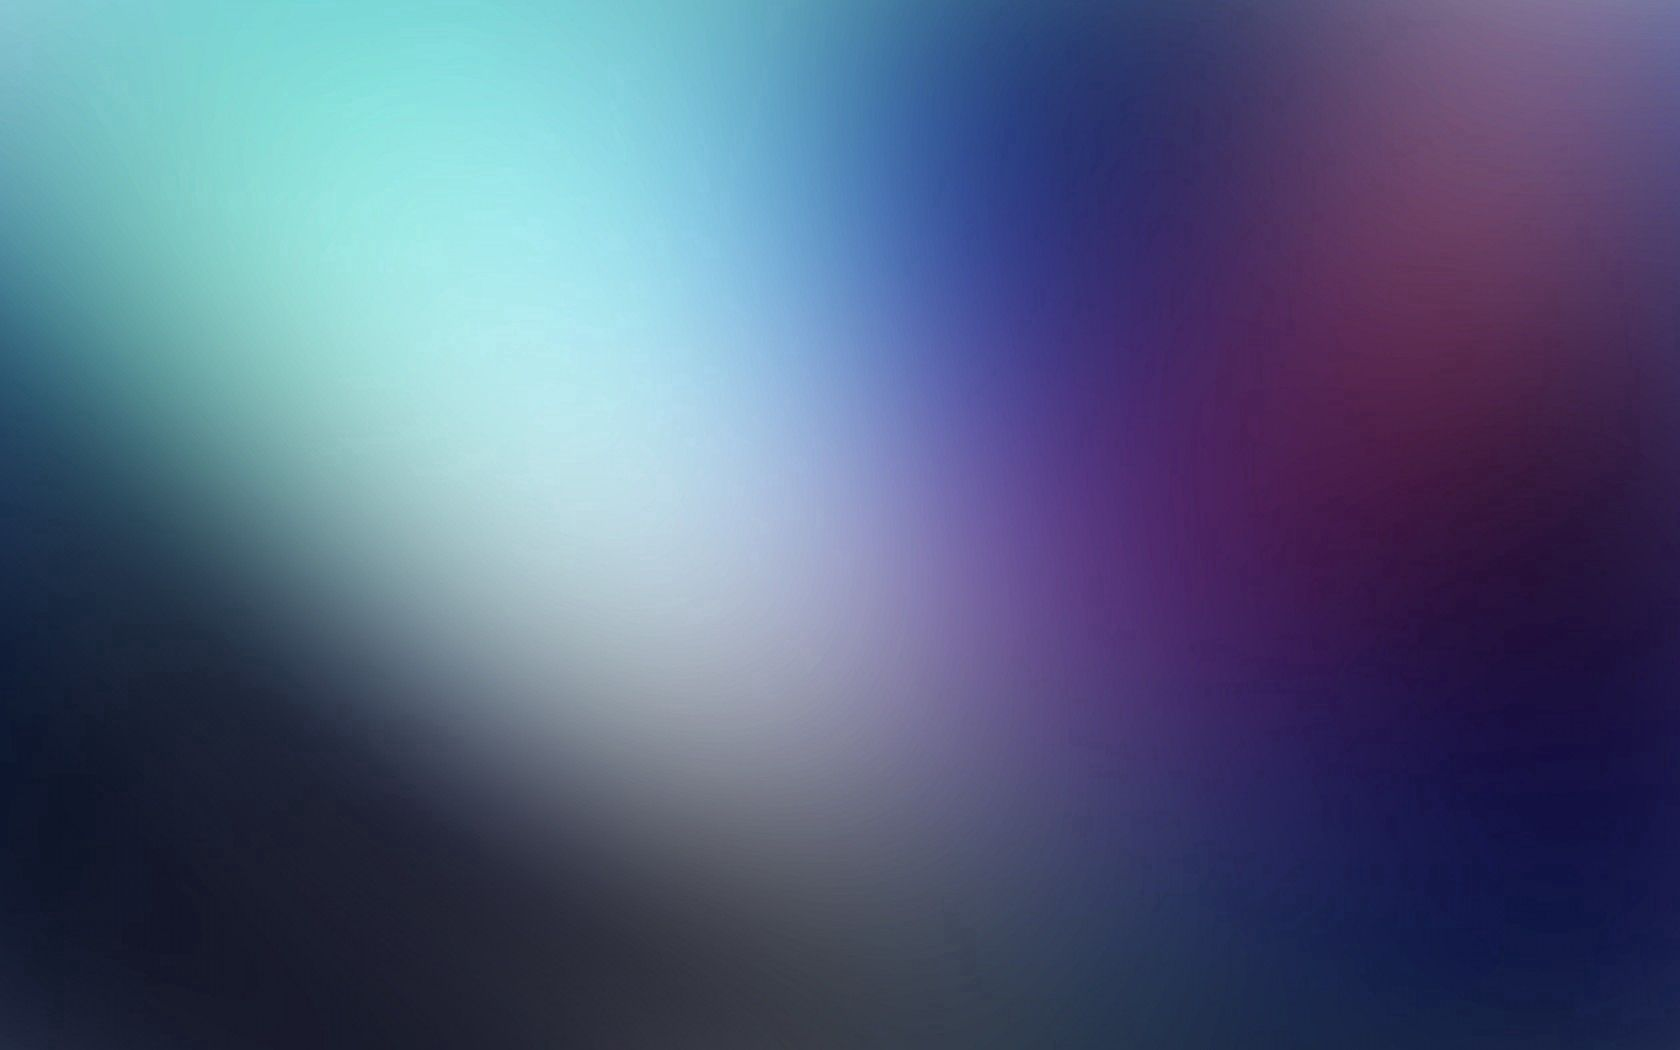 121138 download wallpaper Abstract, Background, Dark, Stains, Spots screensavers and pictures for free